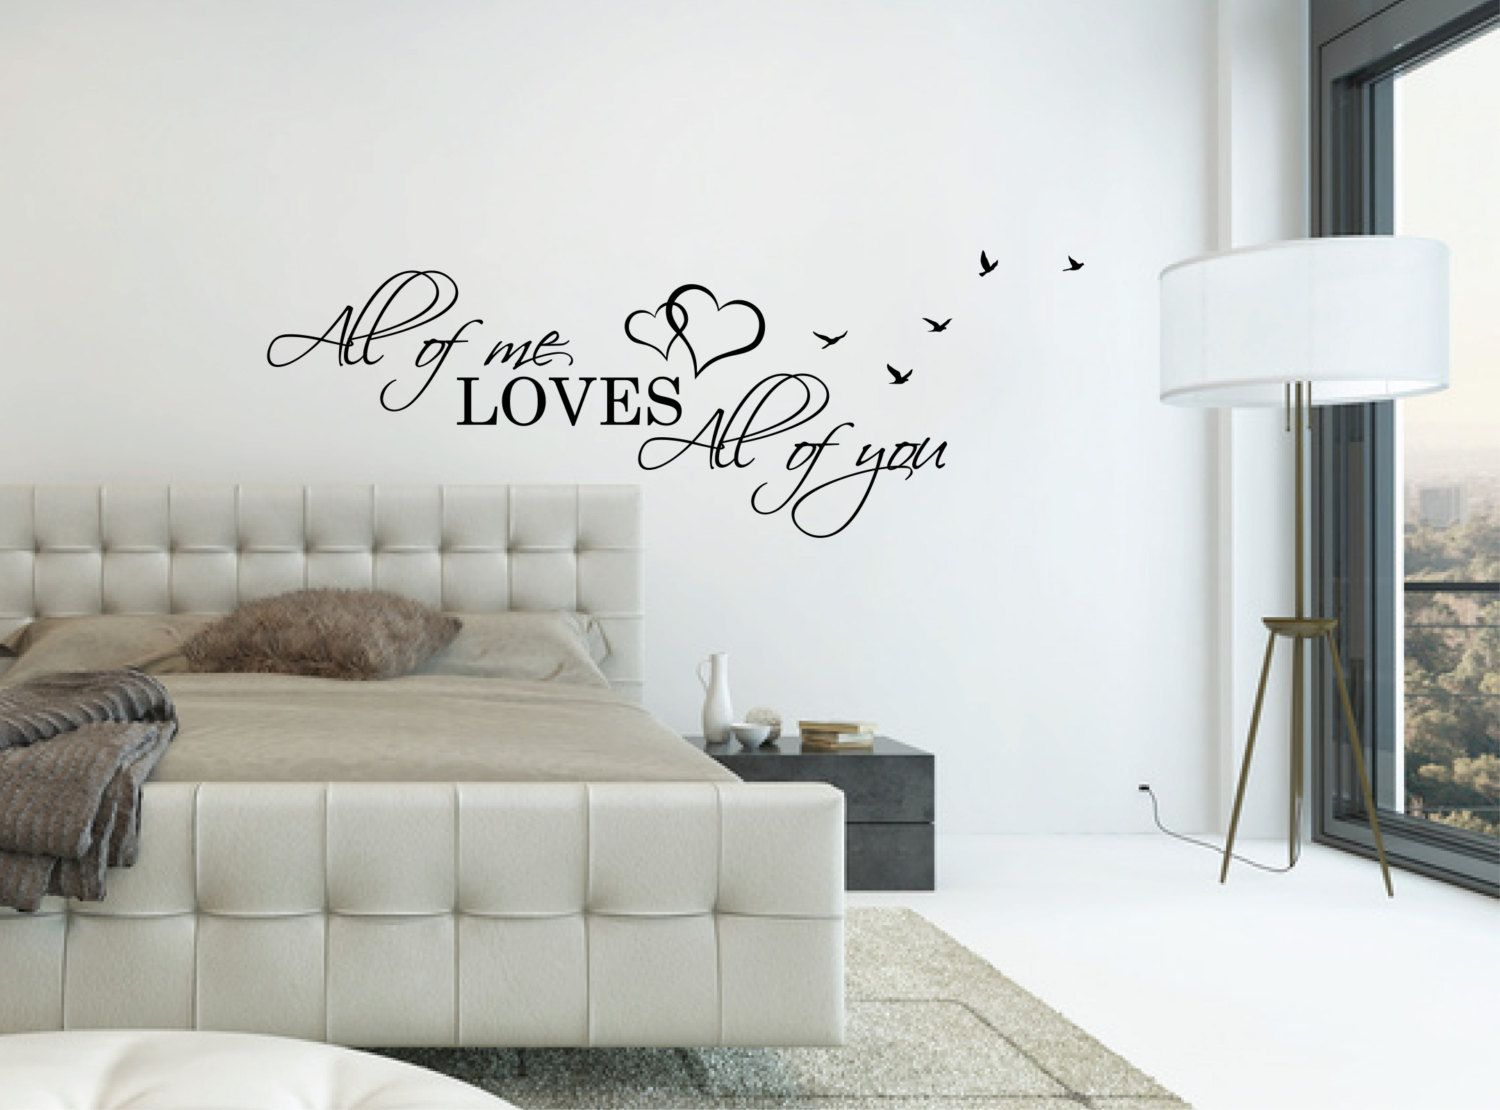 Love Quotes Wall Decals Above Bed Wall Decal Quote  All Of Me Loves All Of You L Over Bed